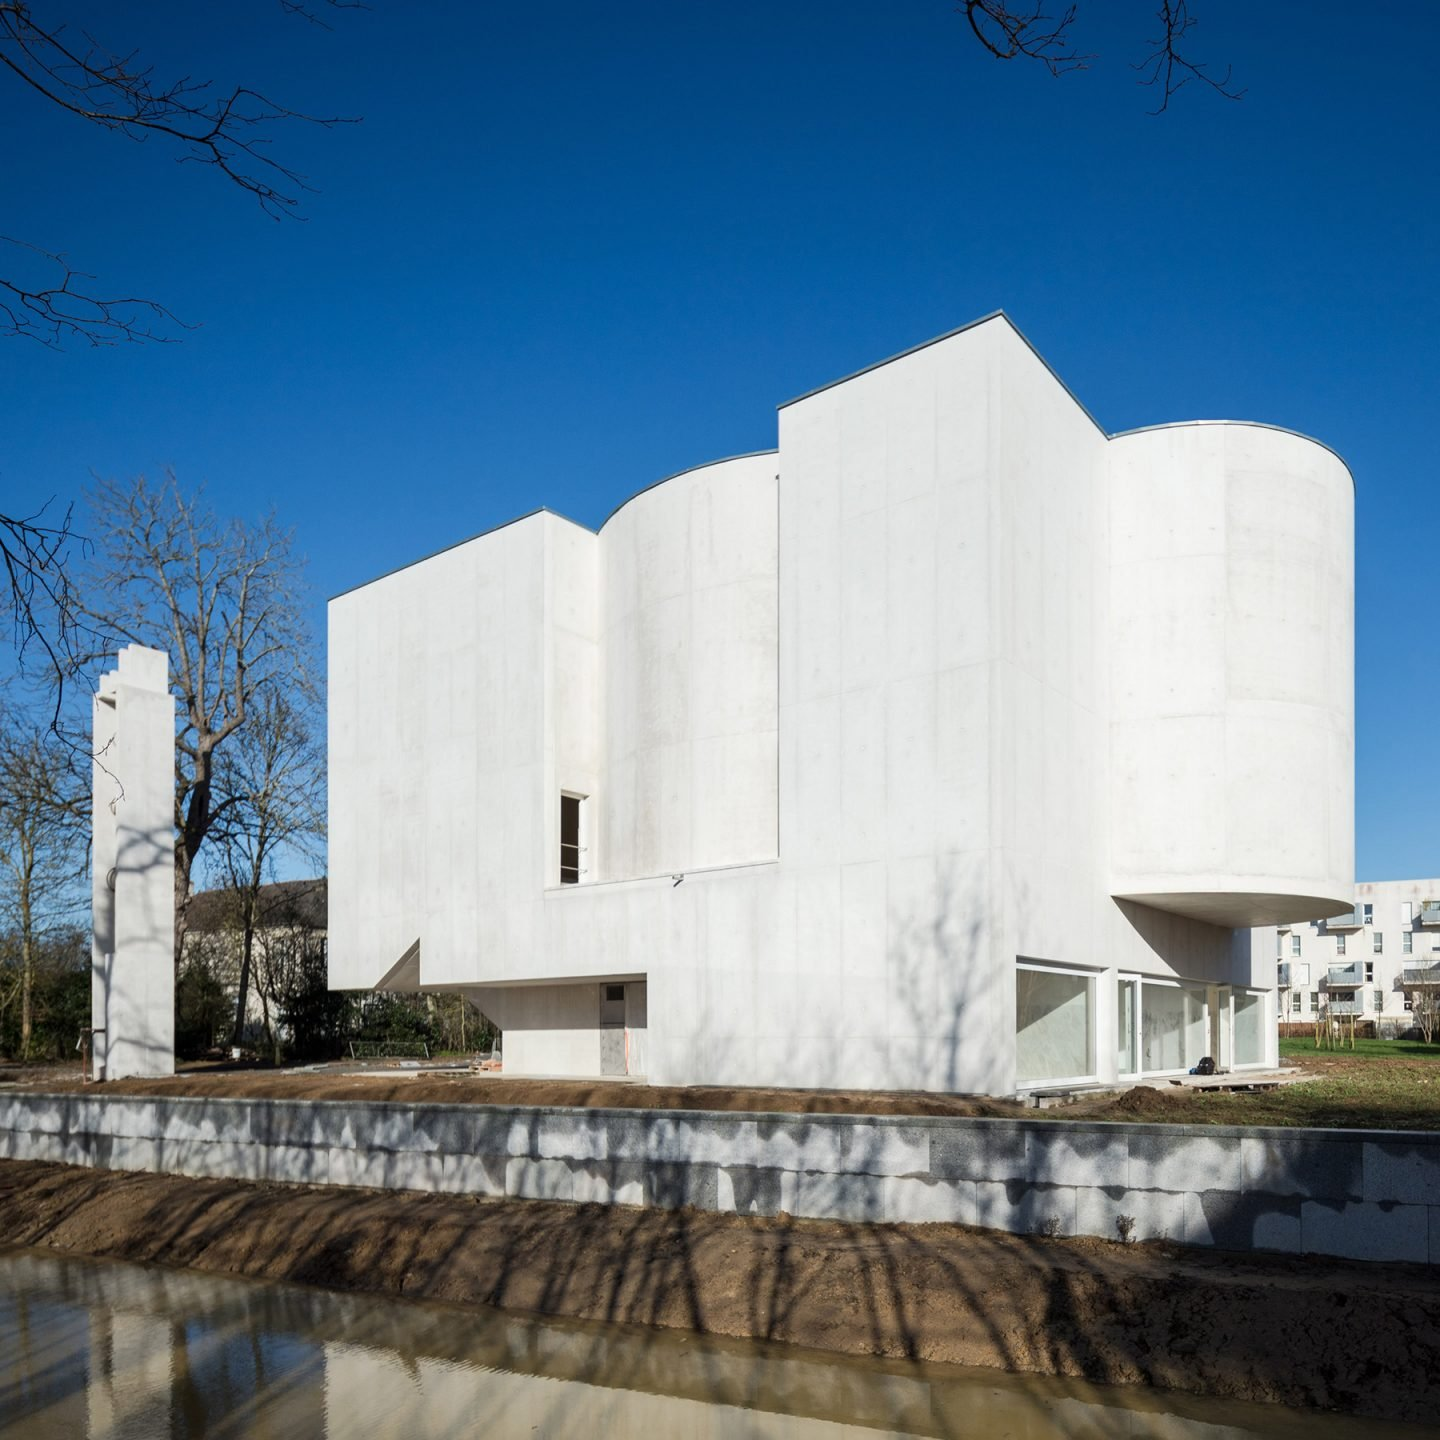 Álvaro Siza Designs A White-Concrete Modernist Church - IGNANT